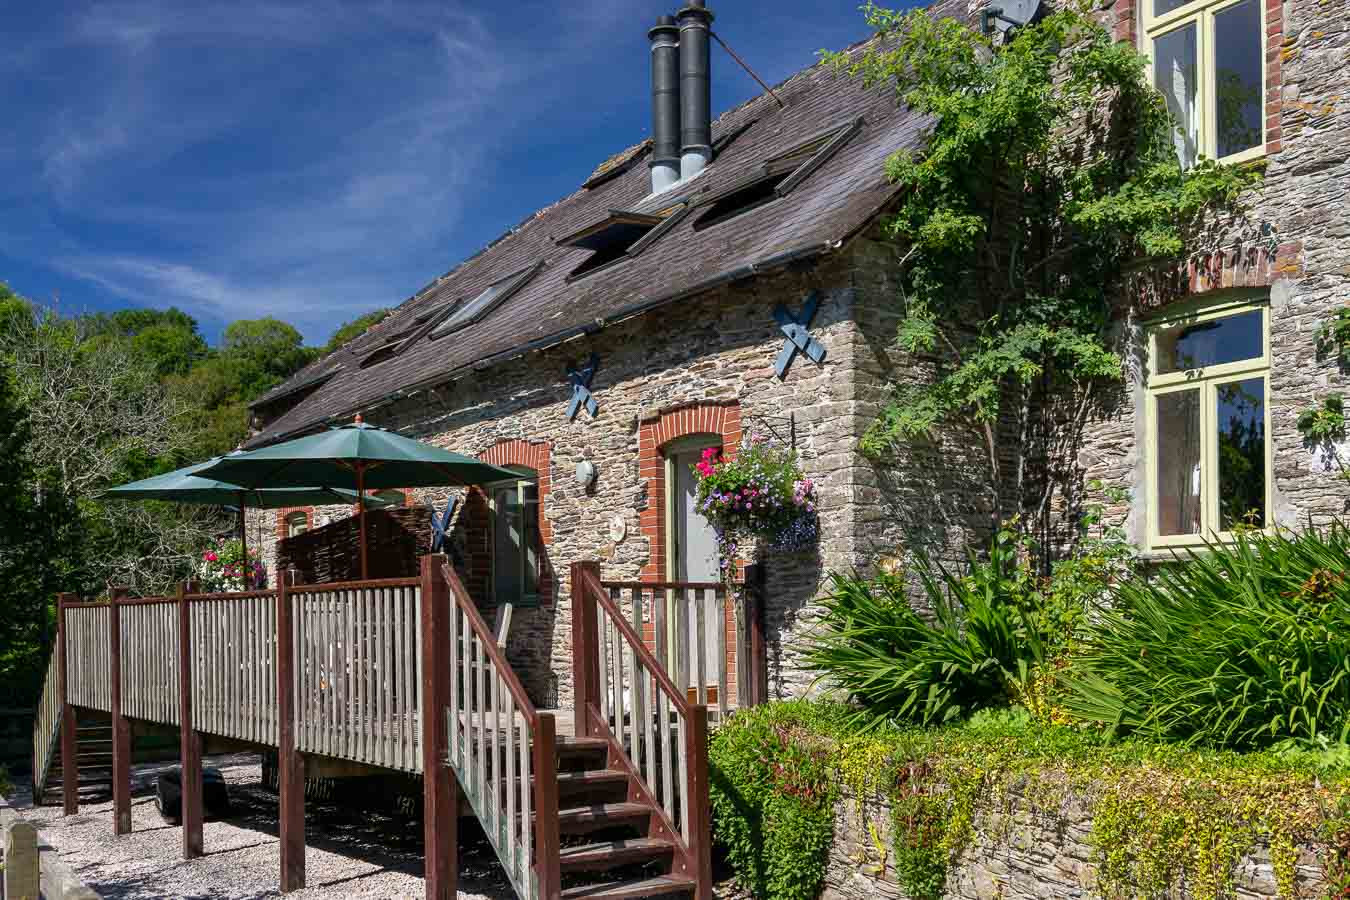 Cartwheel, holiday cottage with open fire, sleeps 4 people. Flear Farm, Devon.